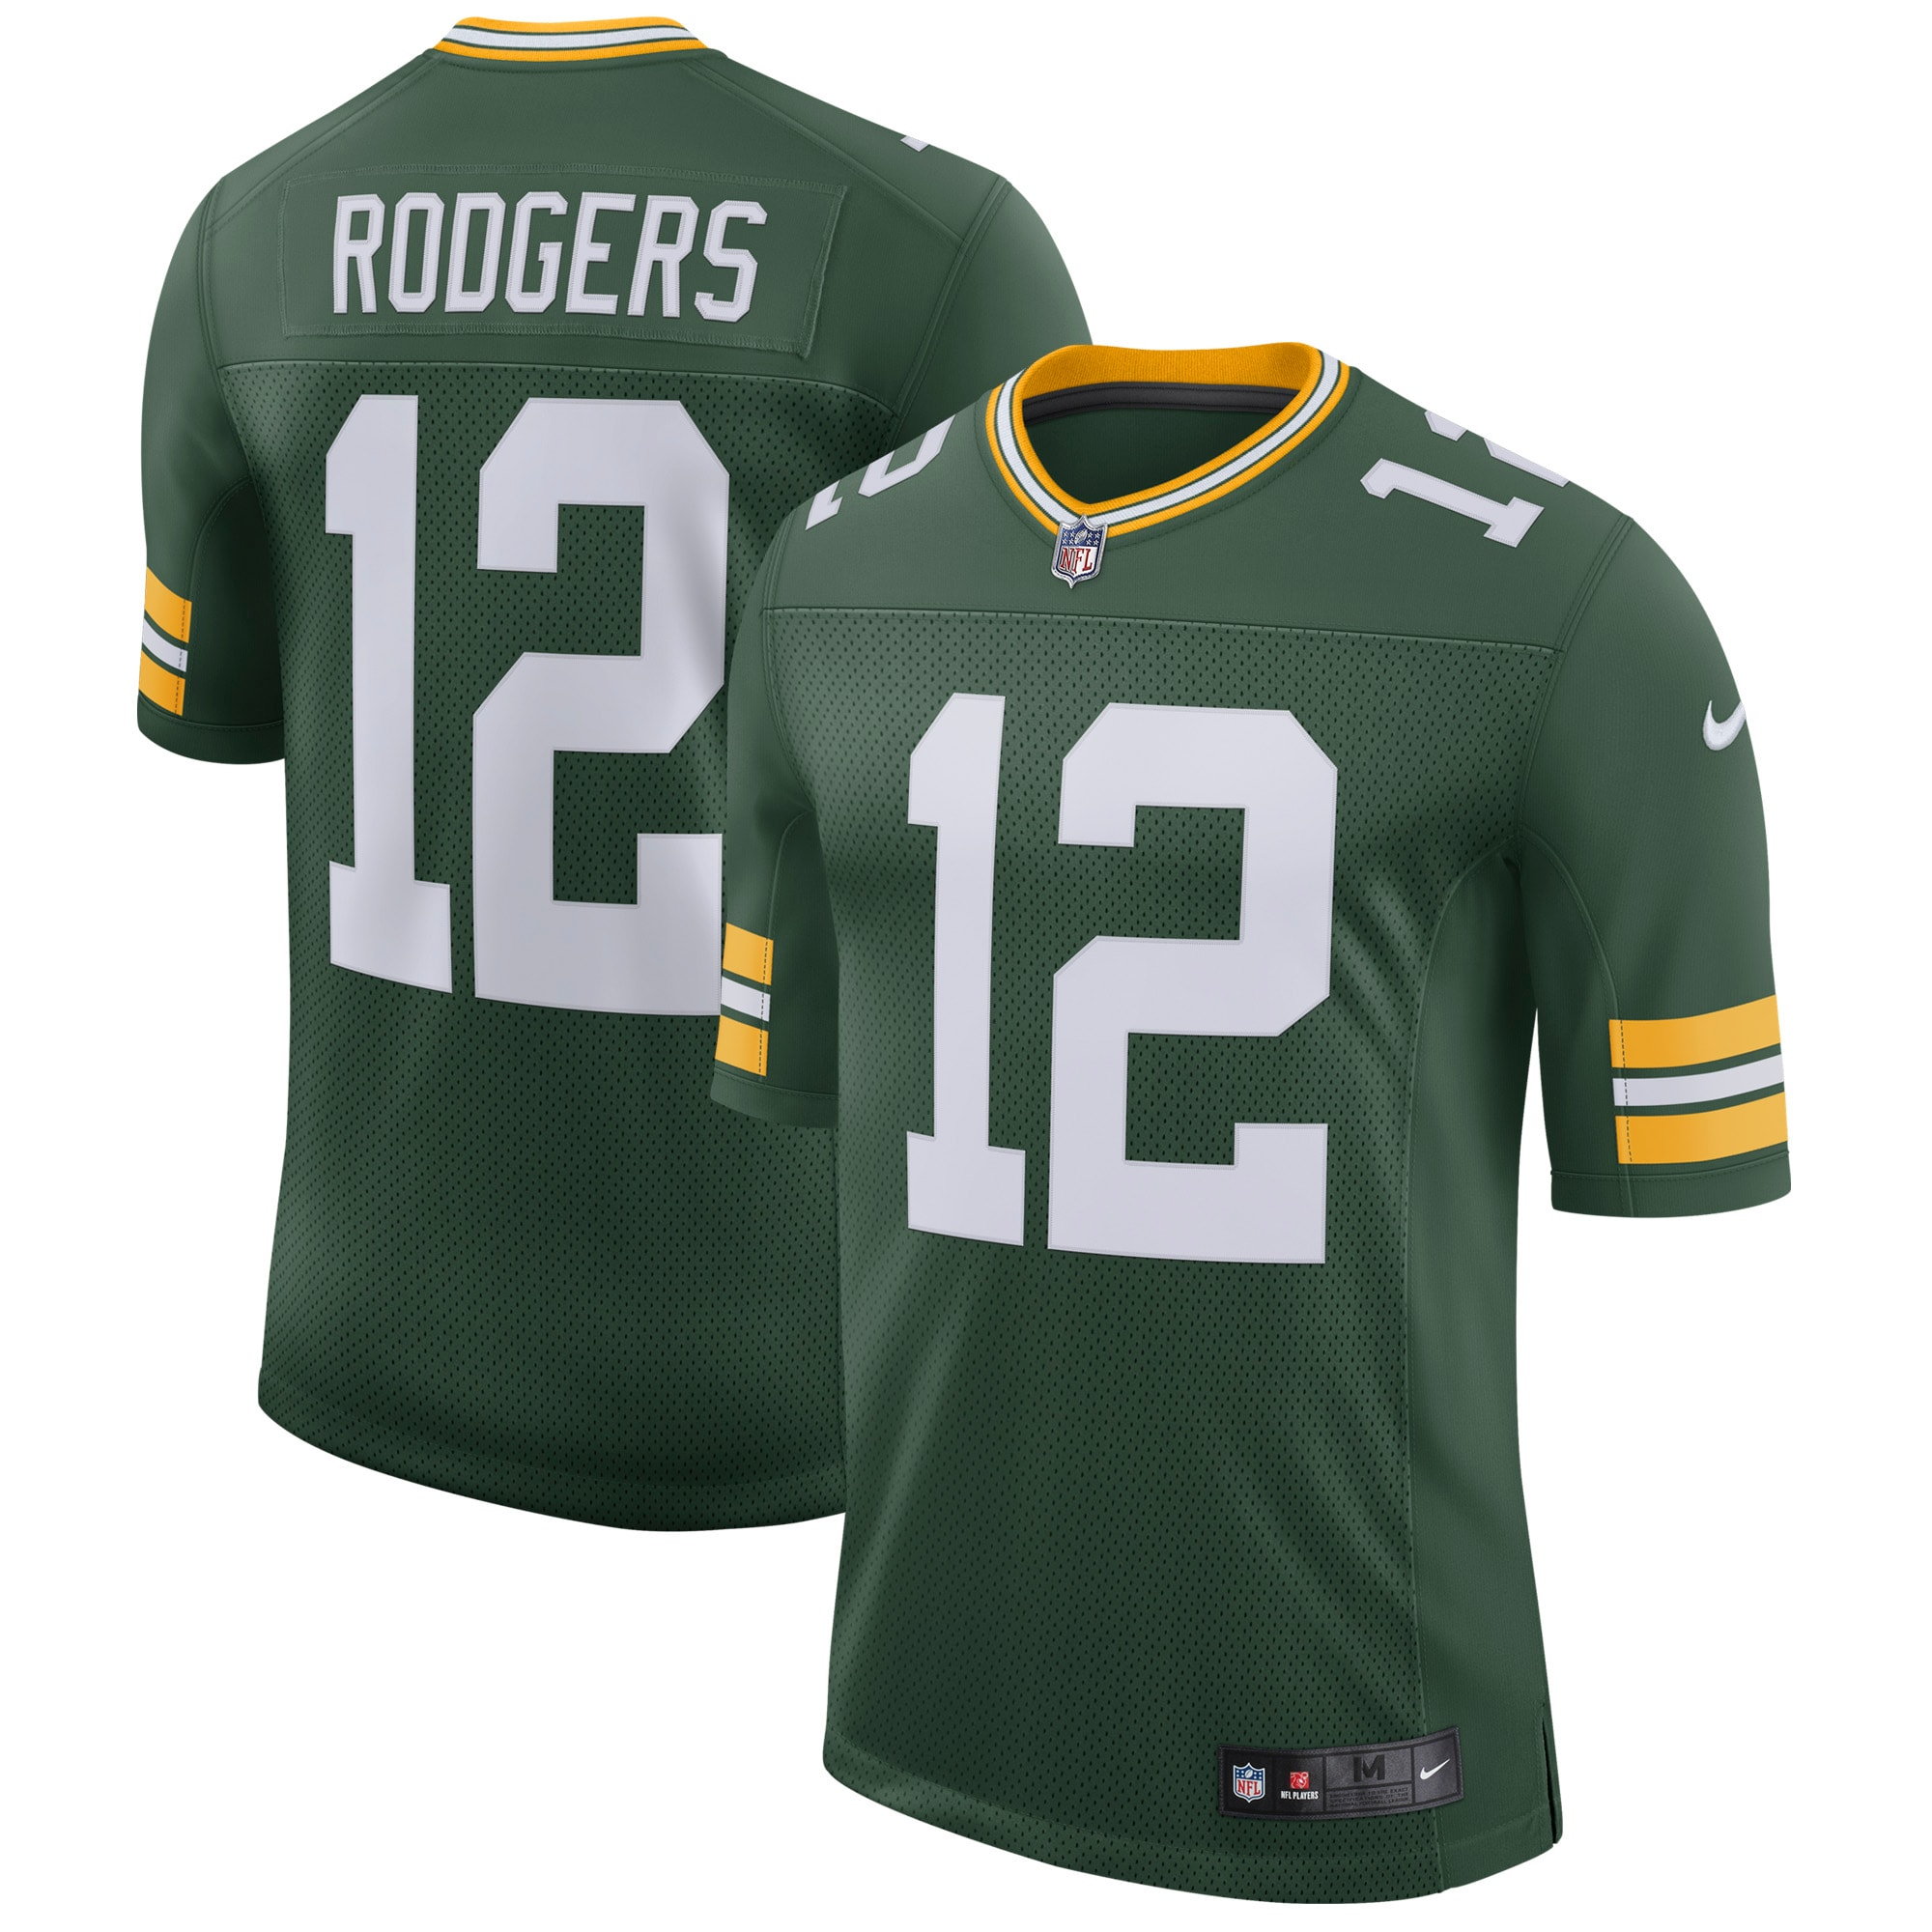 Aaron Rodgers Green Bay Packers Nike Classic Limited Player Jersey - Green